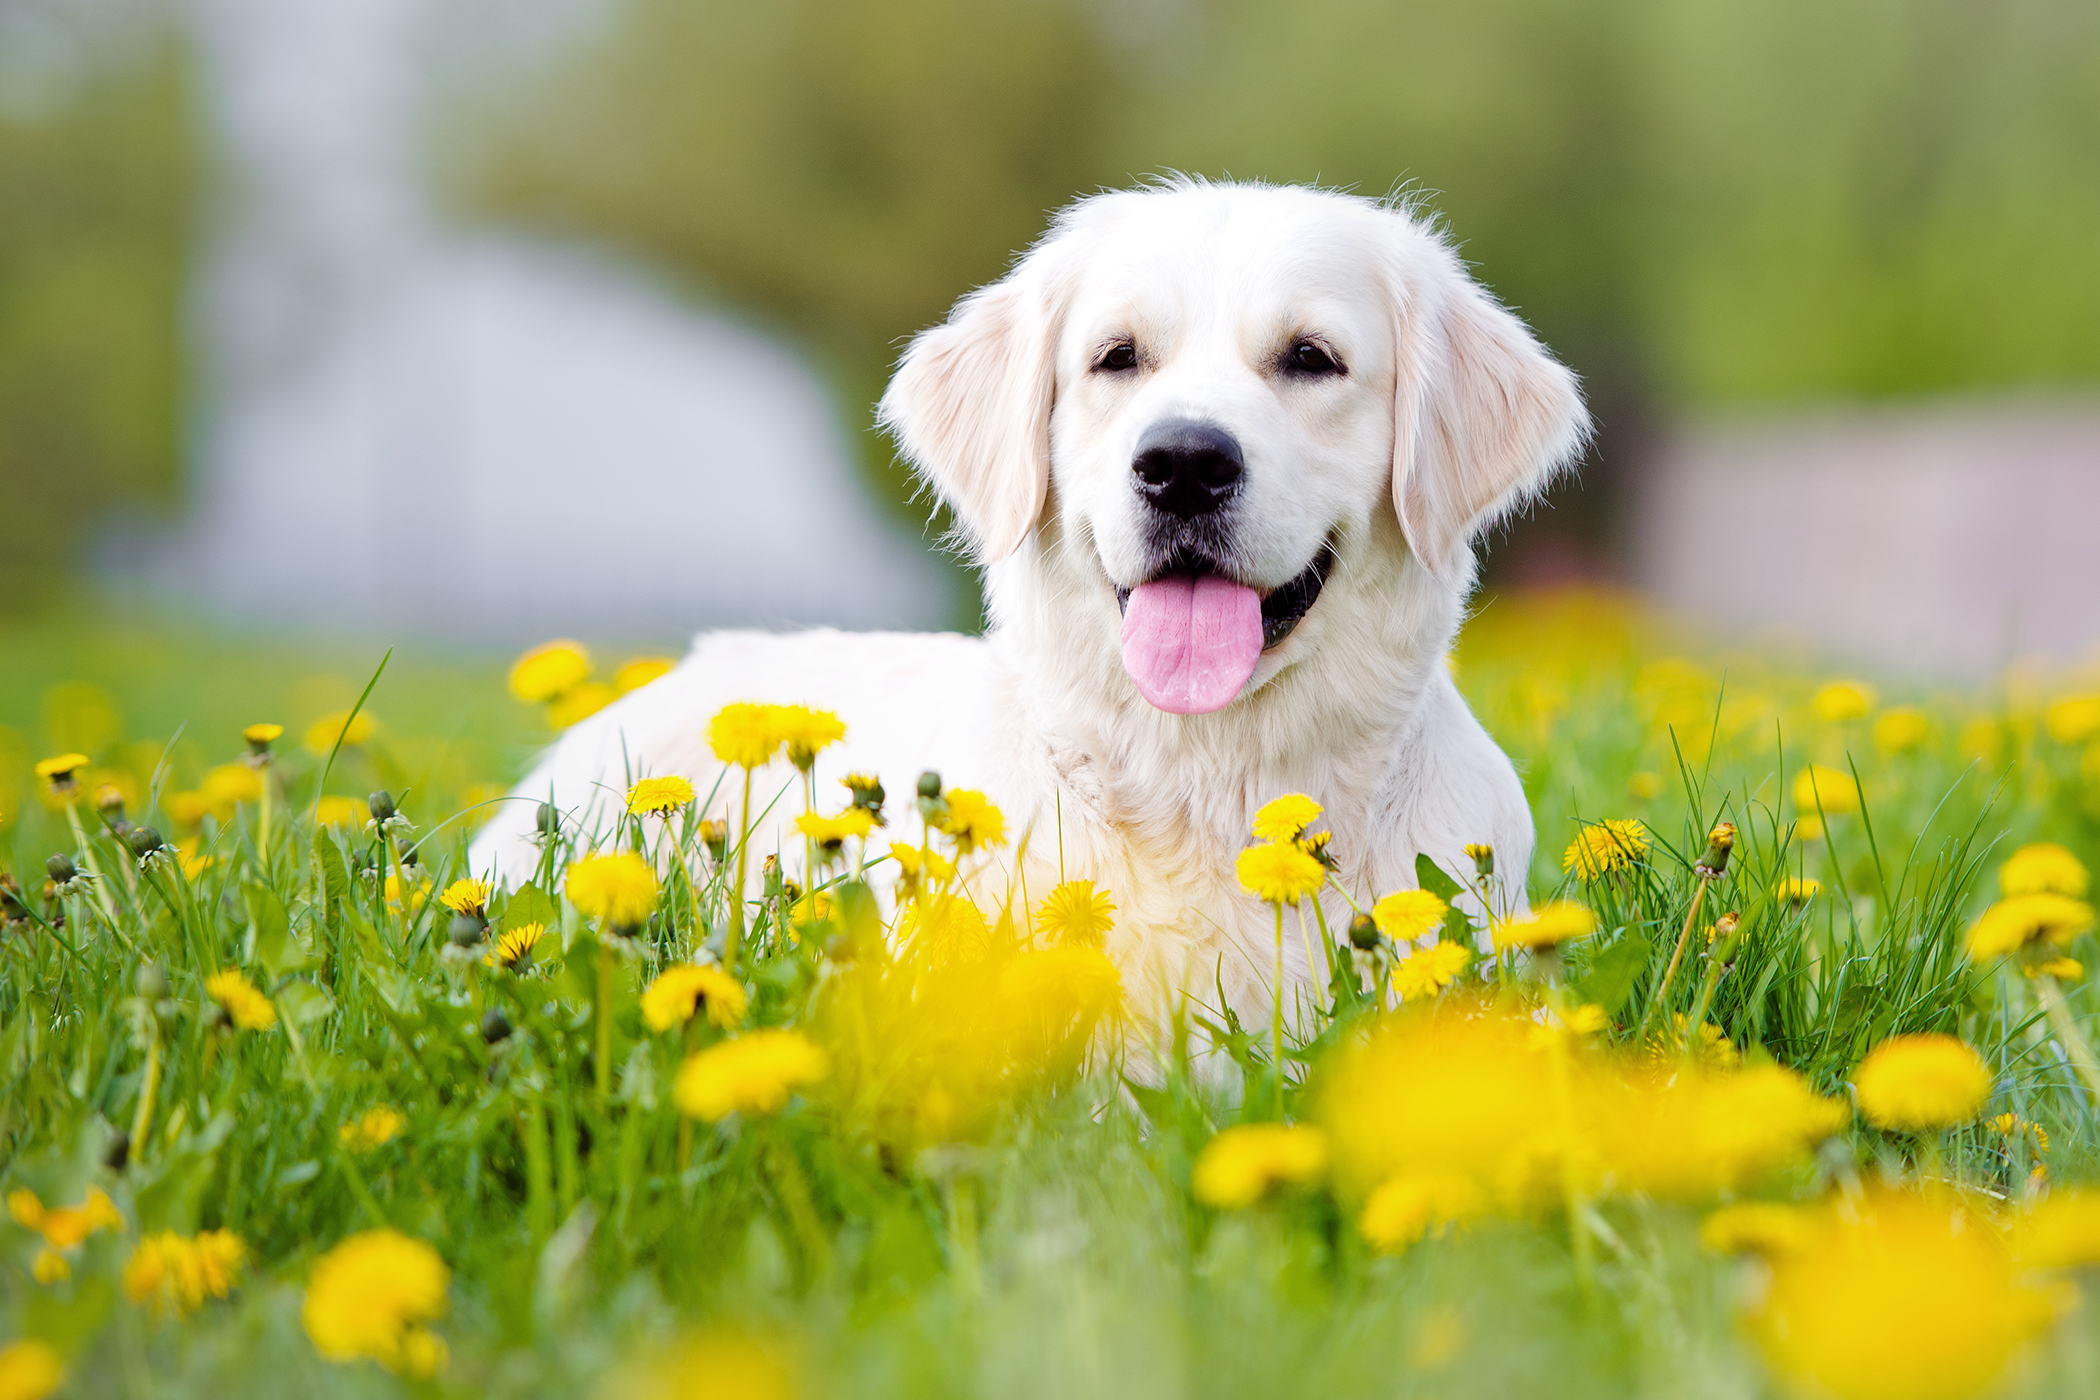 Hearing Aids in Dogs